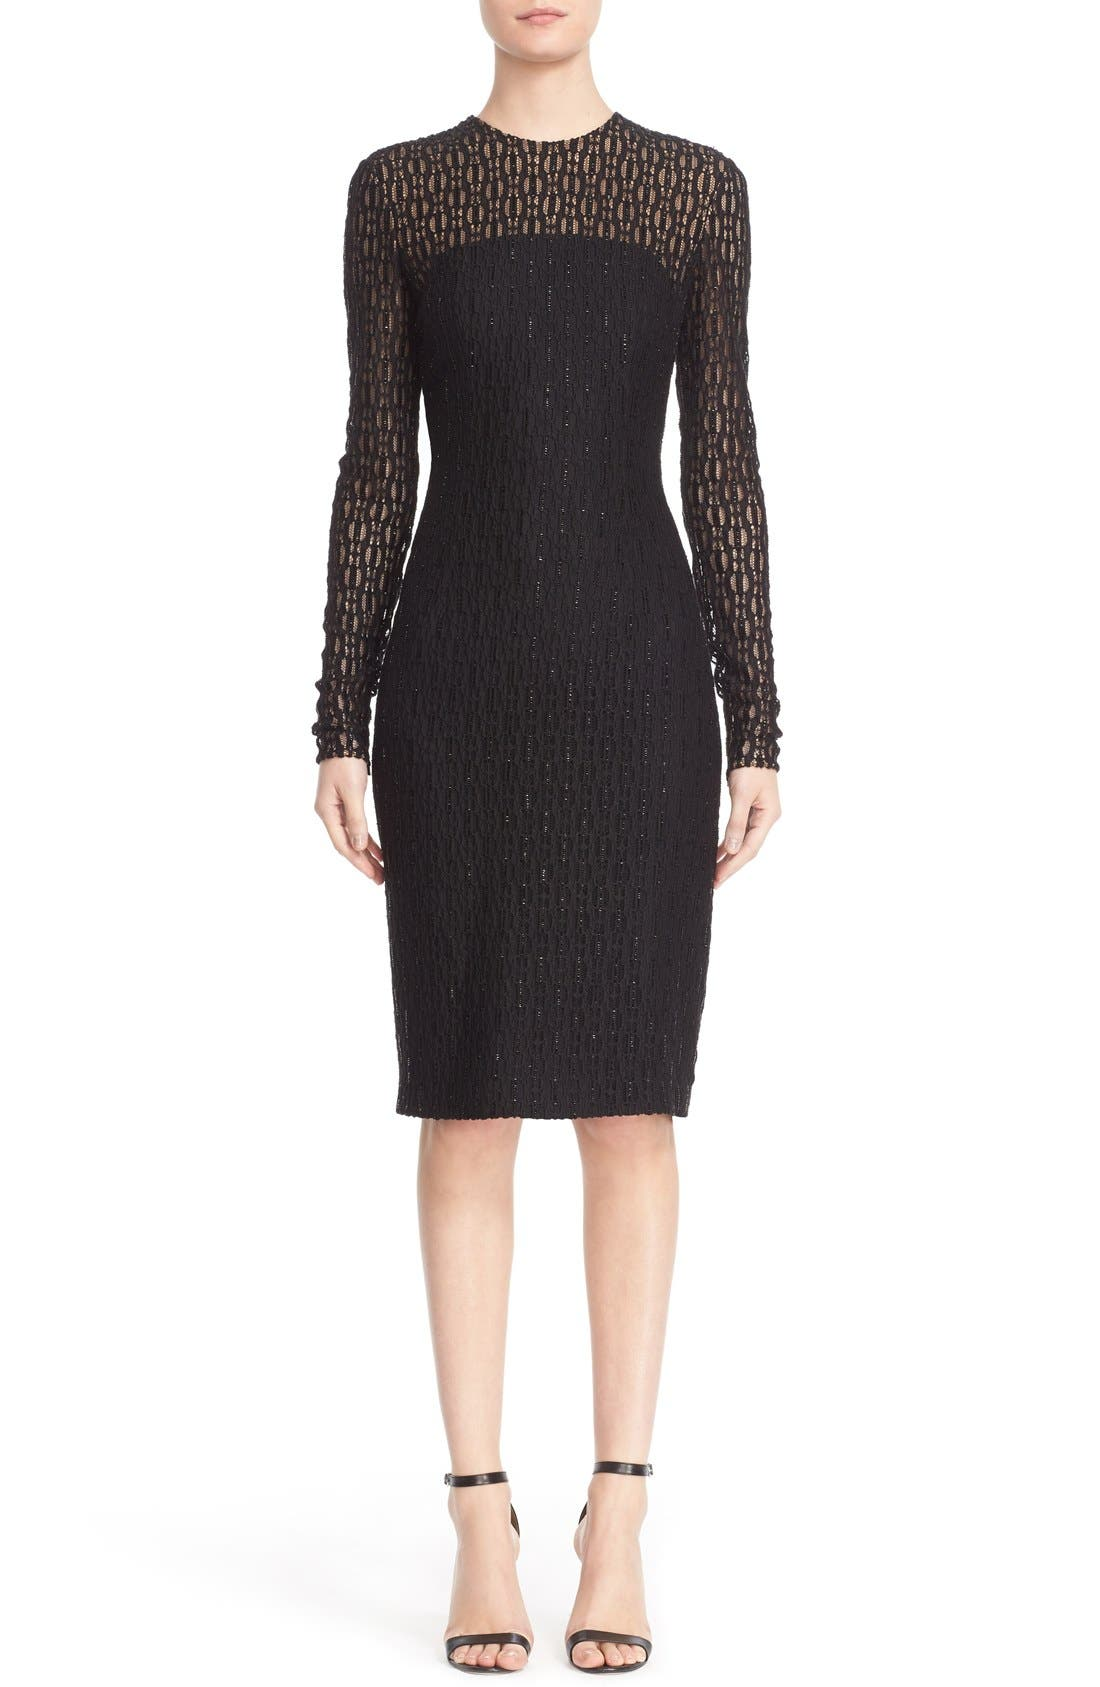 Carmen Marc Valvo Couture Embellished Illusion Lace Knit Sheath Dress